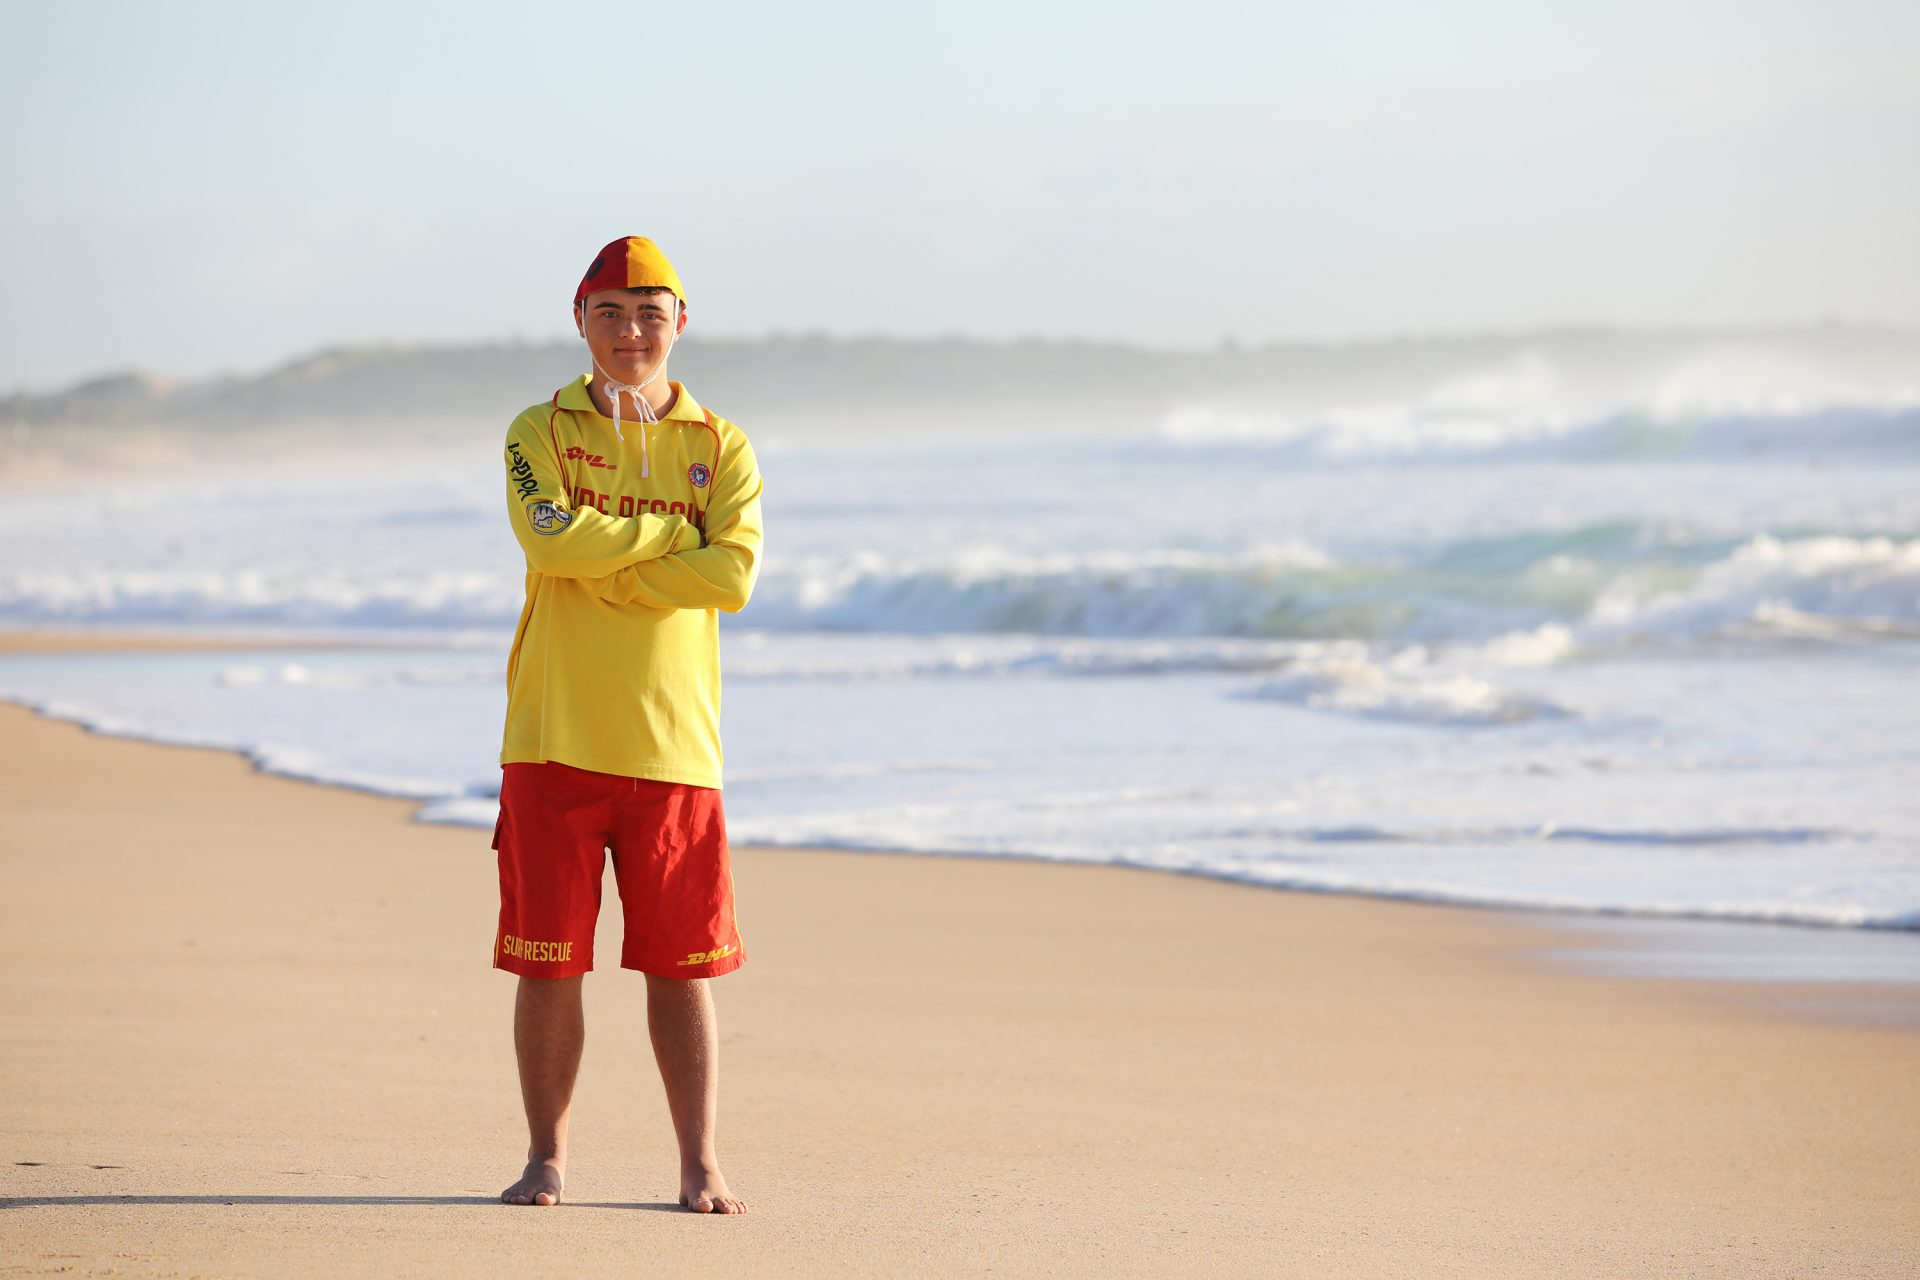 A young male surf life saver is standing on the beach in a yellow and red uniform. He is folding his arms and smiling at the camera.